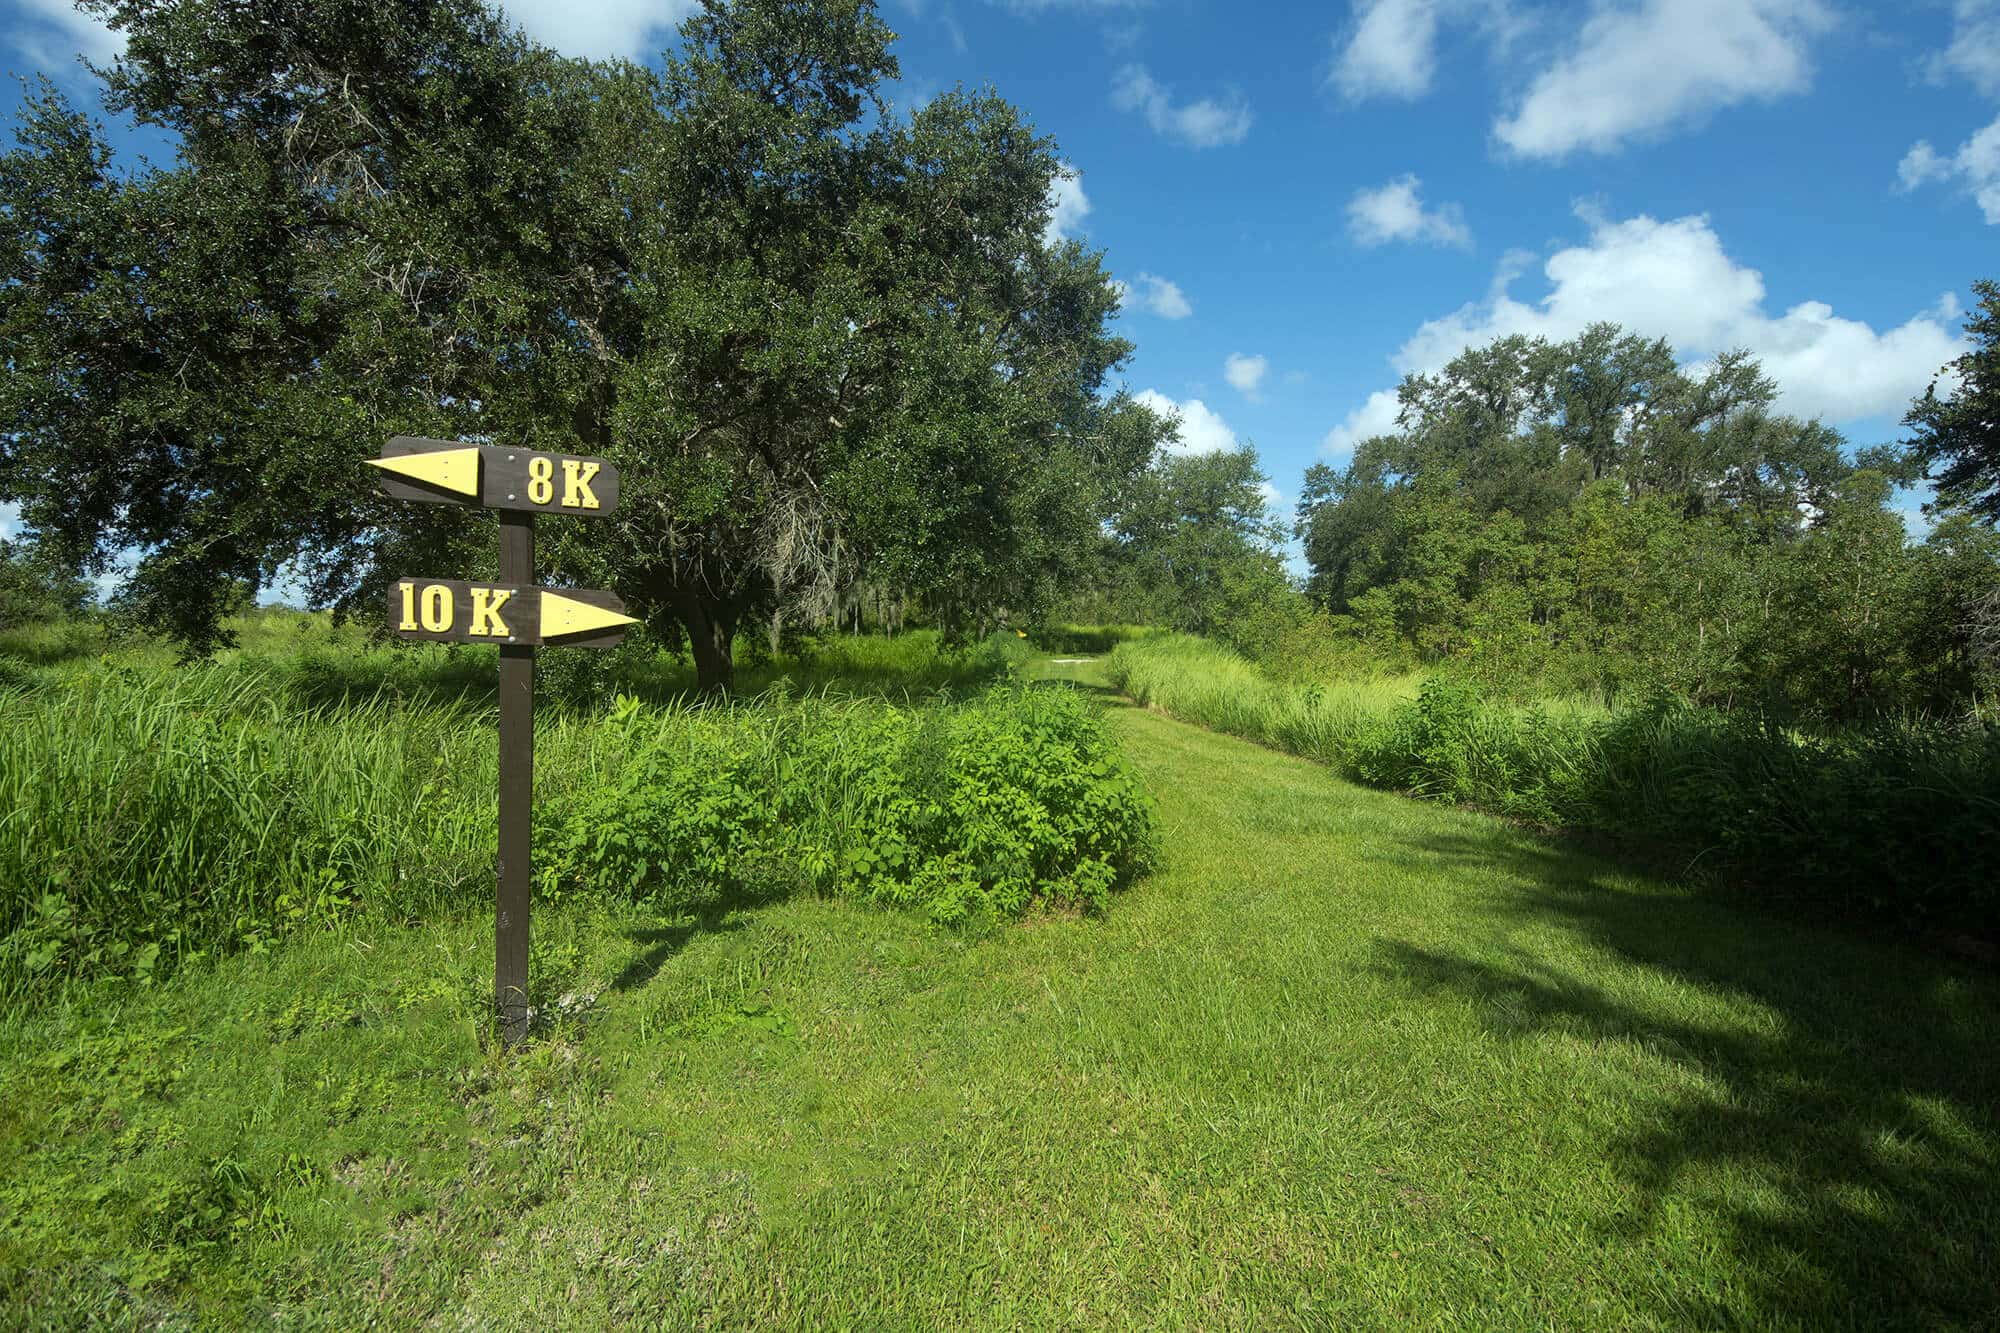 8K and 10K trail markers and grassy running path at Holloway Park in Lakeland, FL